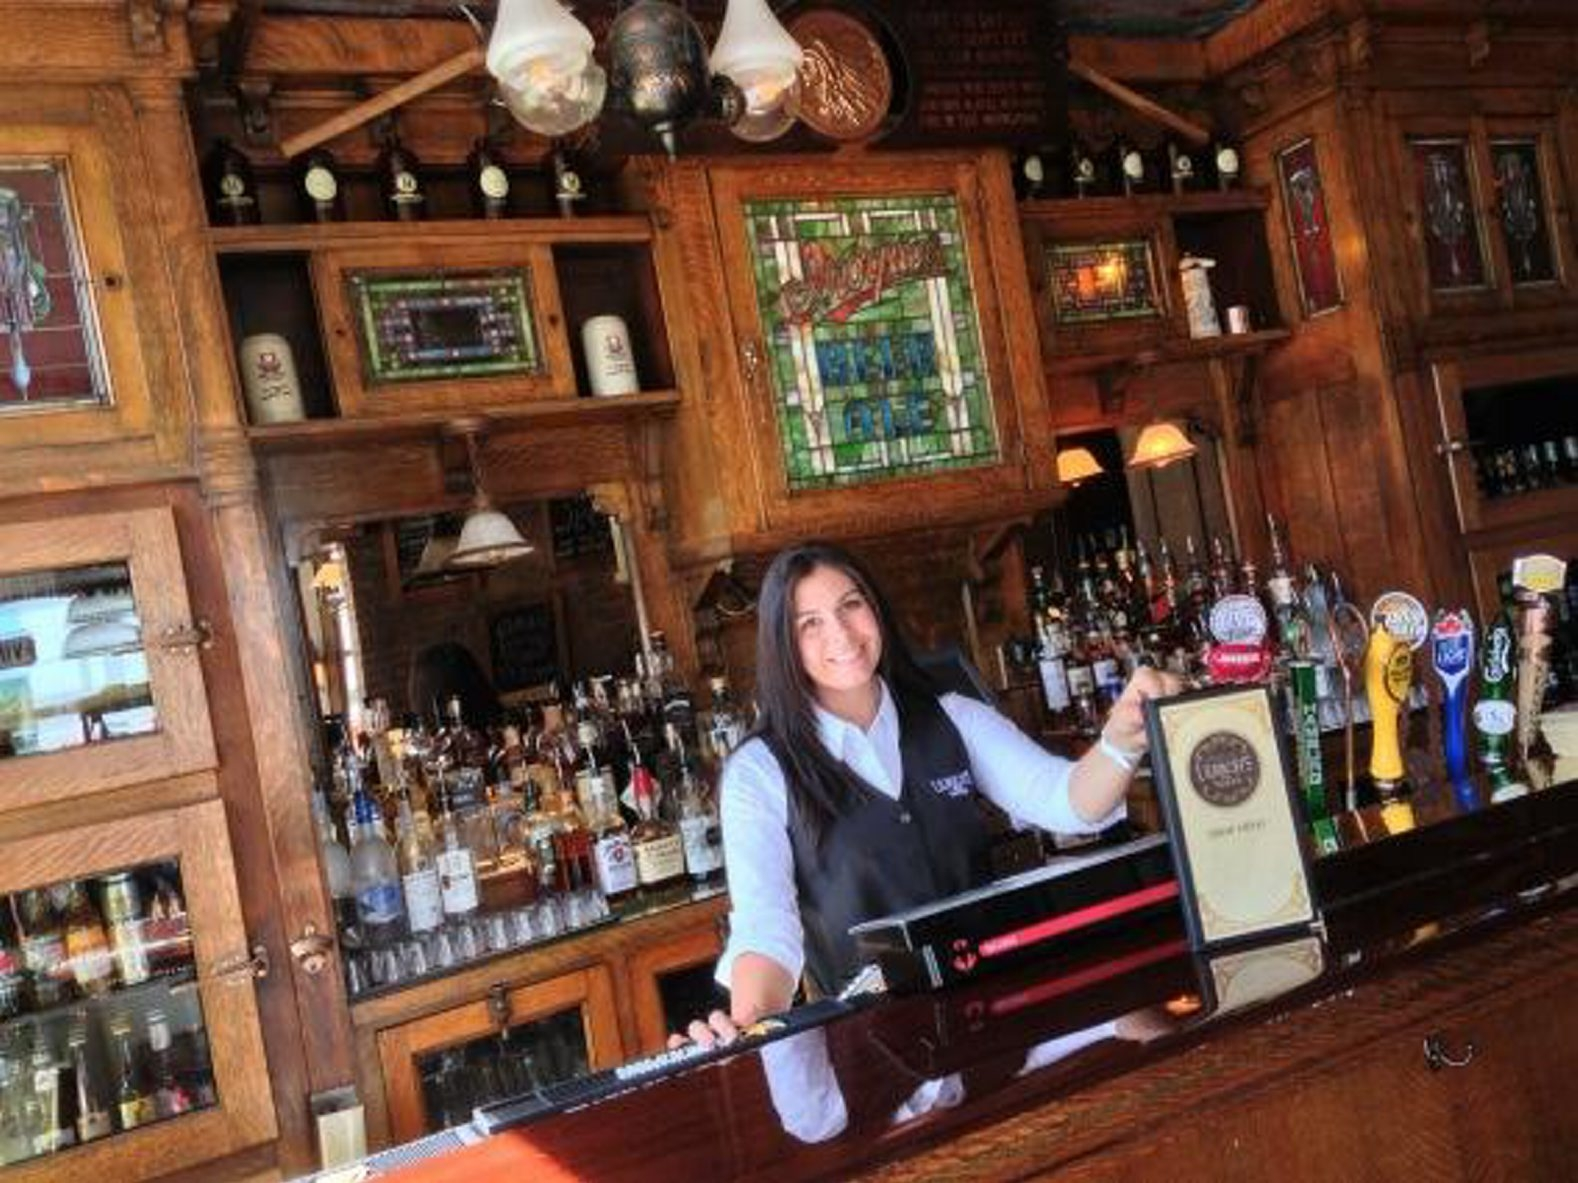 Bartender Molly DiBlasi puts out the new drink menu at Ulrich's  1868 Tavern in preparation for today's grand opening. (John Hickey/Buffalo News)